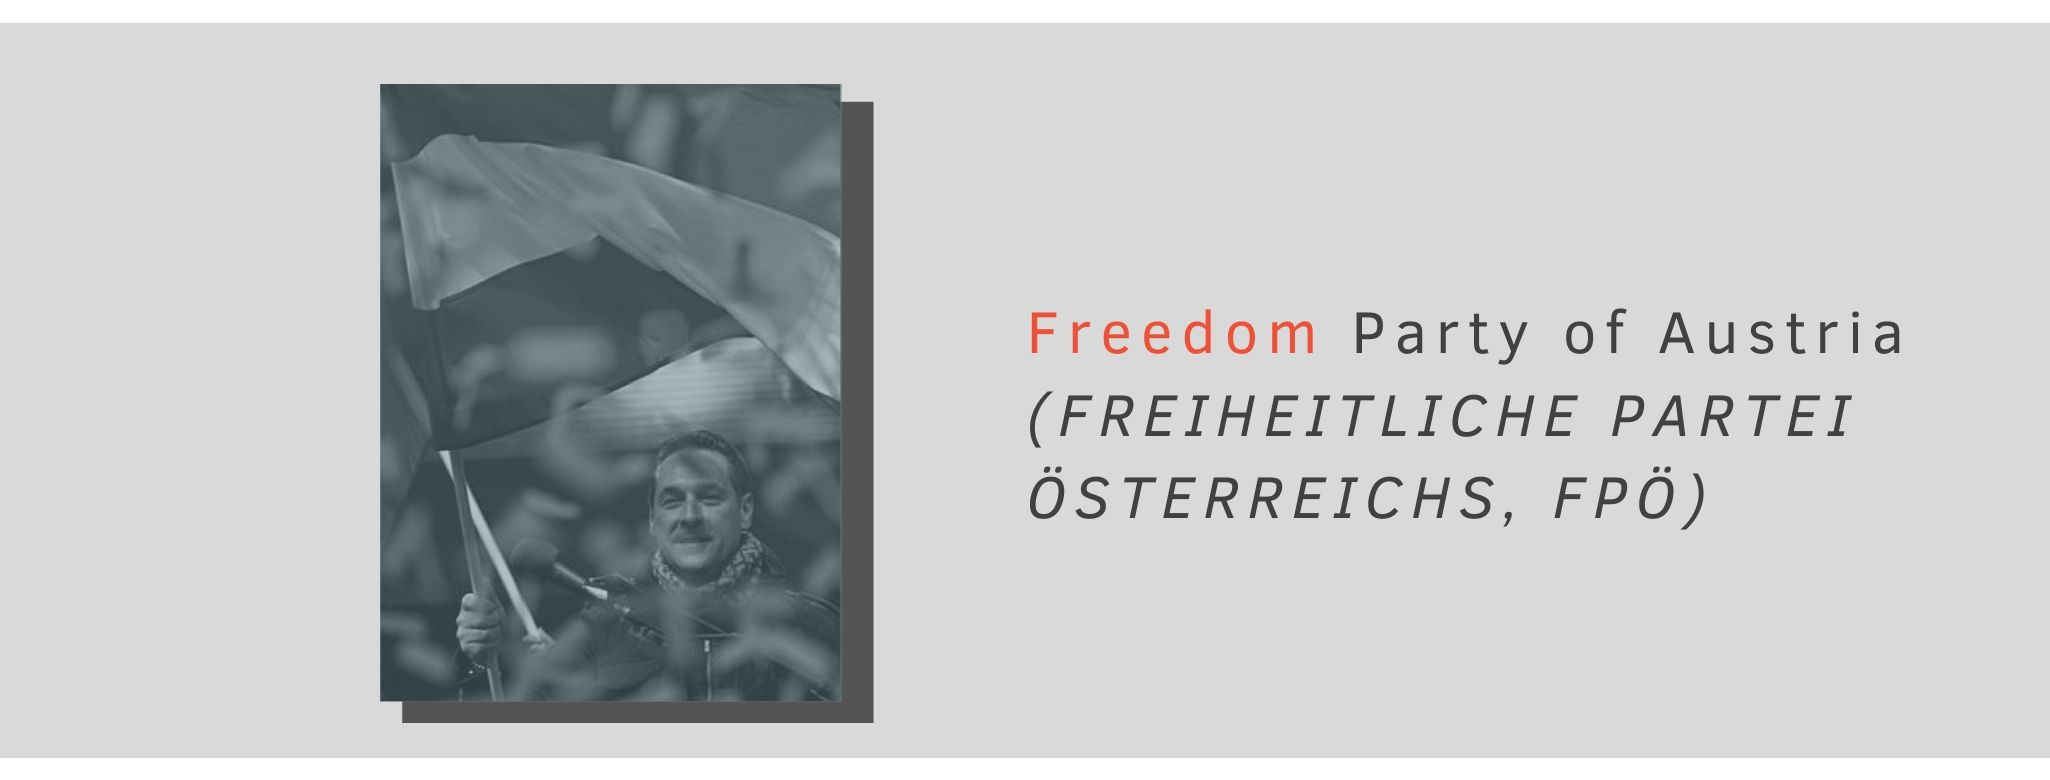 freedom party of austria